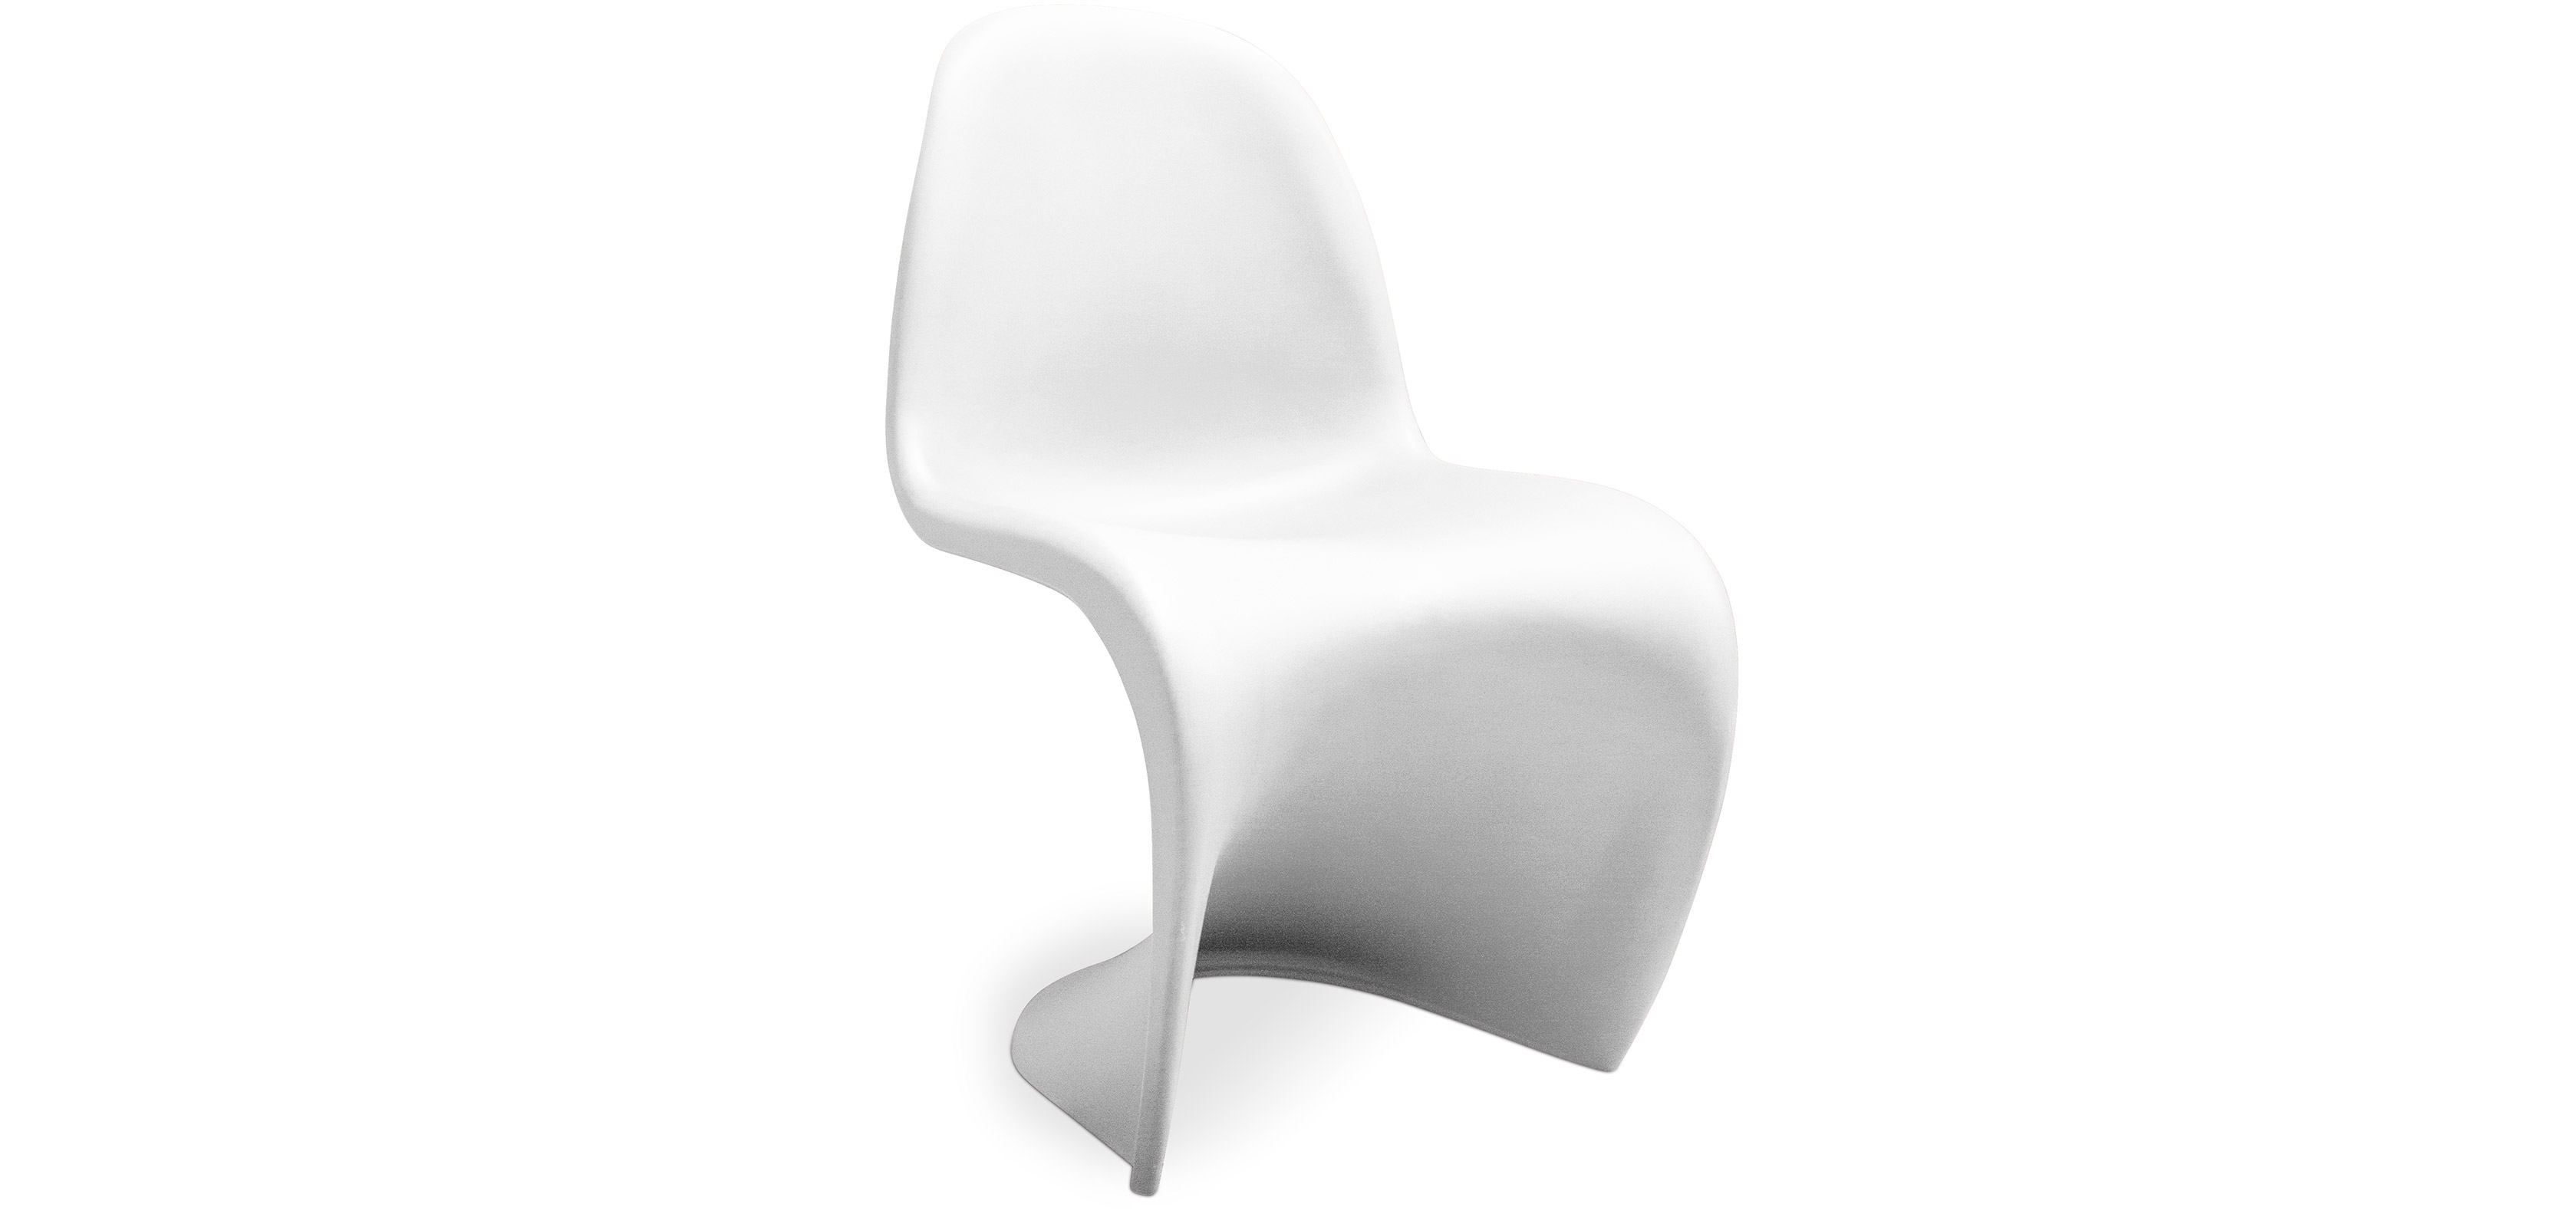 Buy Phanton Chair White 58587 - in the EU